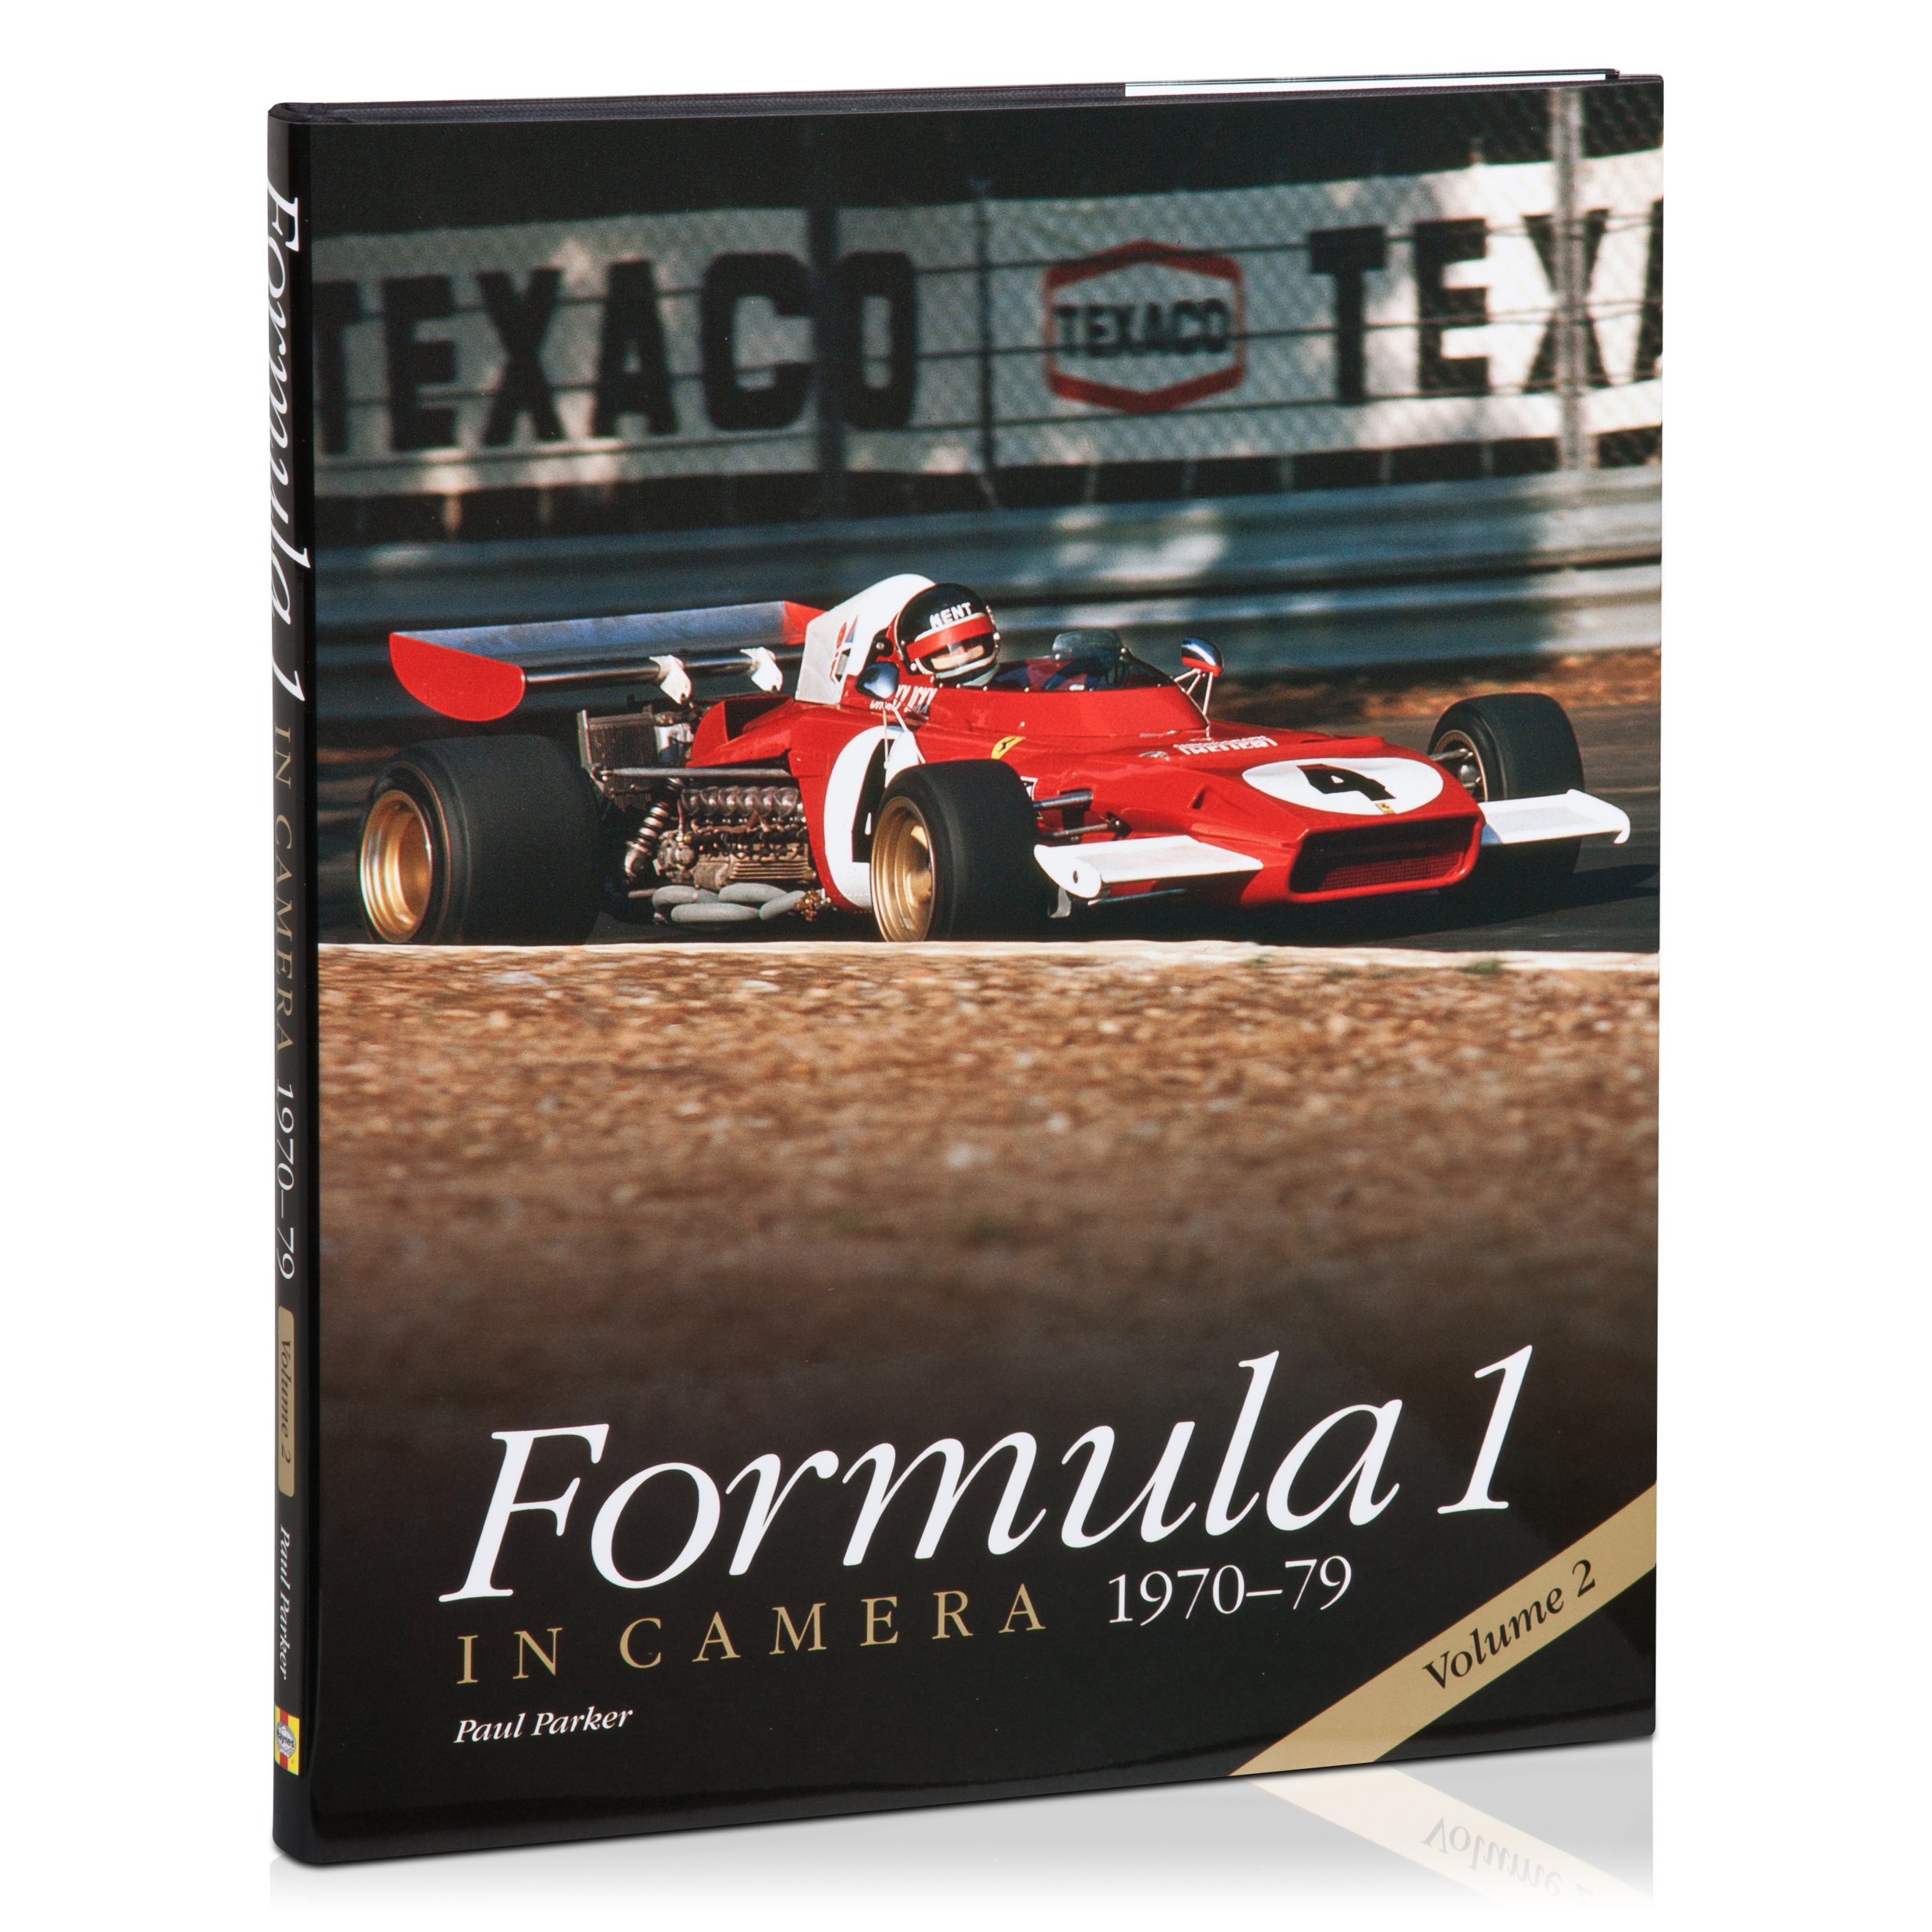 Formula One Formula 1 in Camera 1970-79 Volume 2